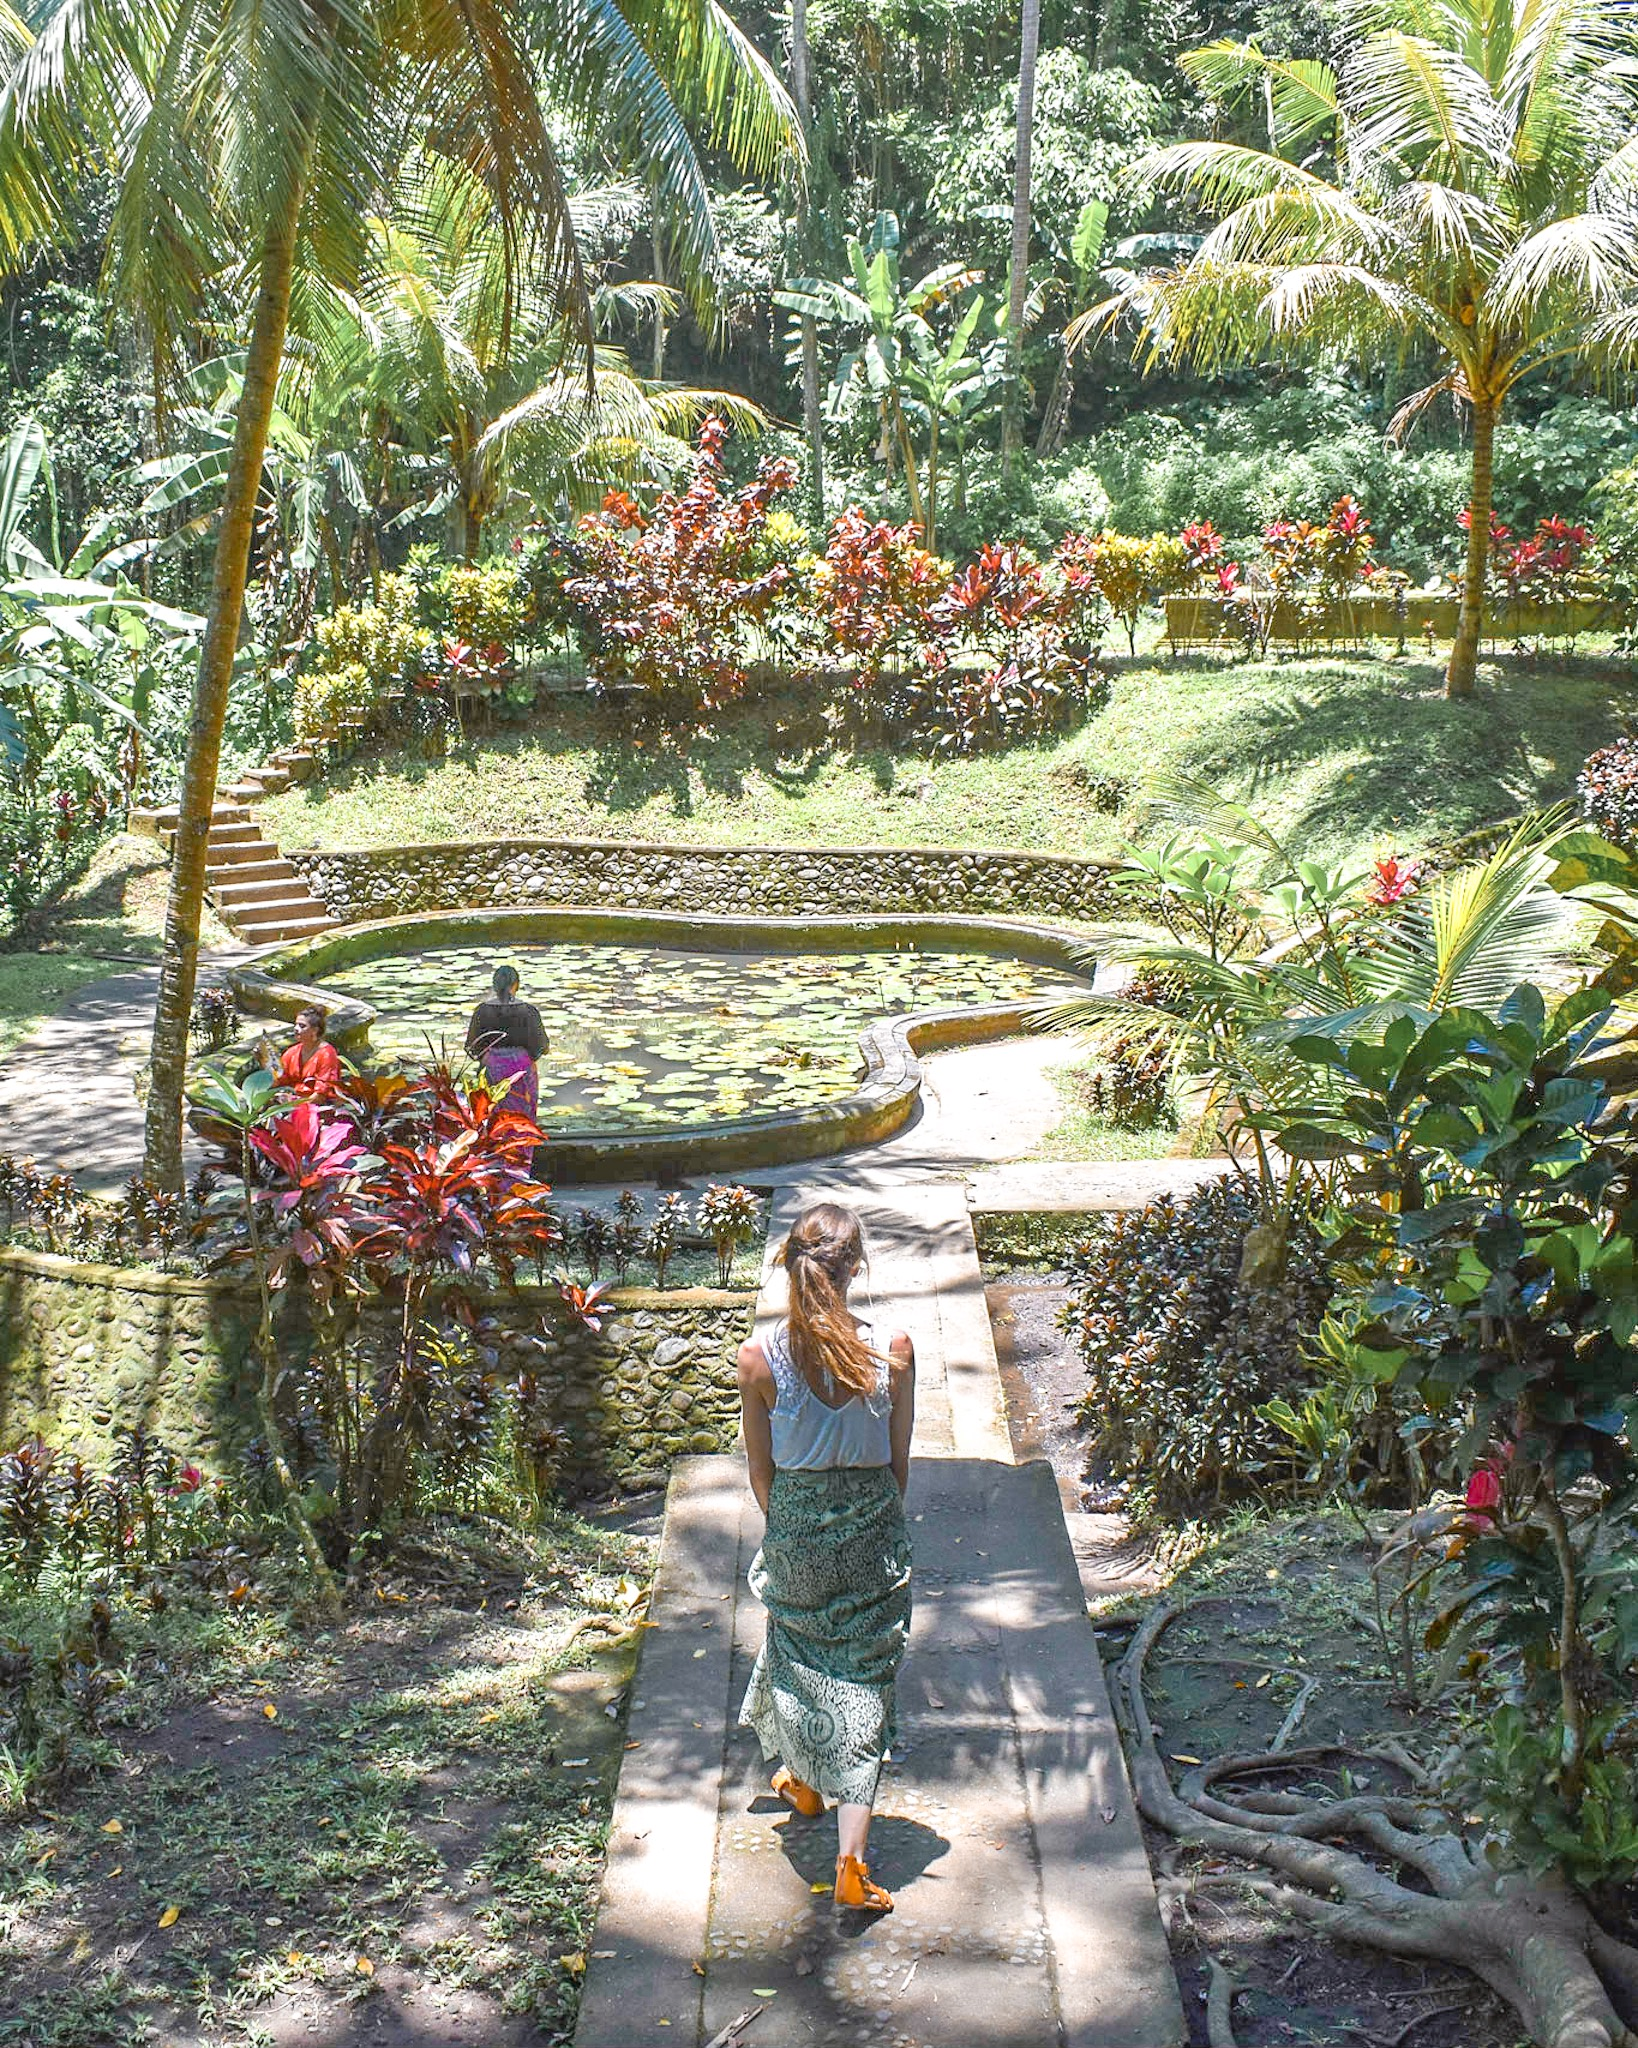 Woman Walks Out to Garden at Elephant Cave Temple in Bali